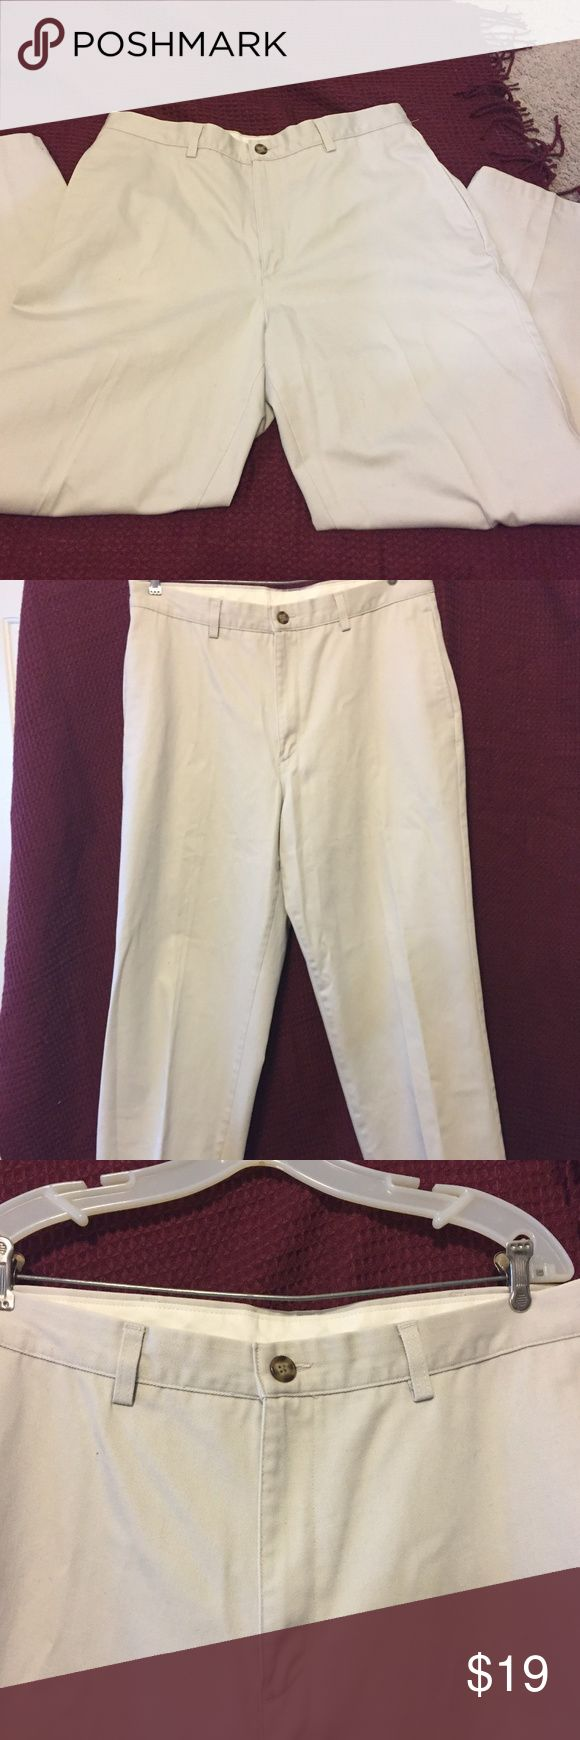 "LL Bean Men's Khaki tan pants W36 L30 Good used condition LL Bean Men's tan/khaki pants. Natural Fit. Waist 36"", Length 30"". Two pockets in back with buttons. Front pockets to slide hands in. Loops for belt. No wear on hem. No stains, rips, etc. 100% cotton. Machine wash Warm. Waist and length still measure 36"" and 30"" after washing. Still has front creases. L.L. Bean Pants Chinos & Khakis"